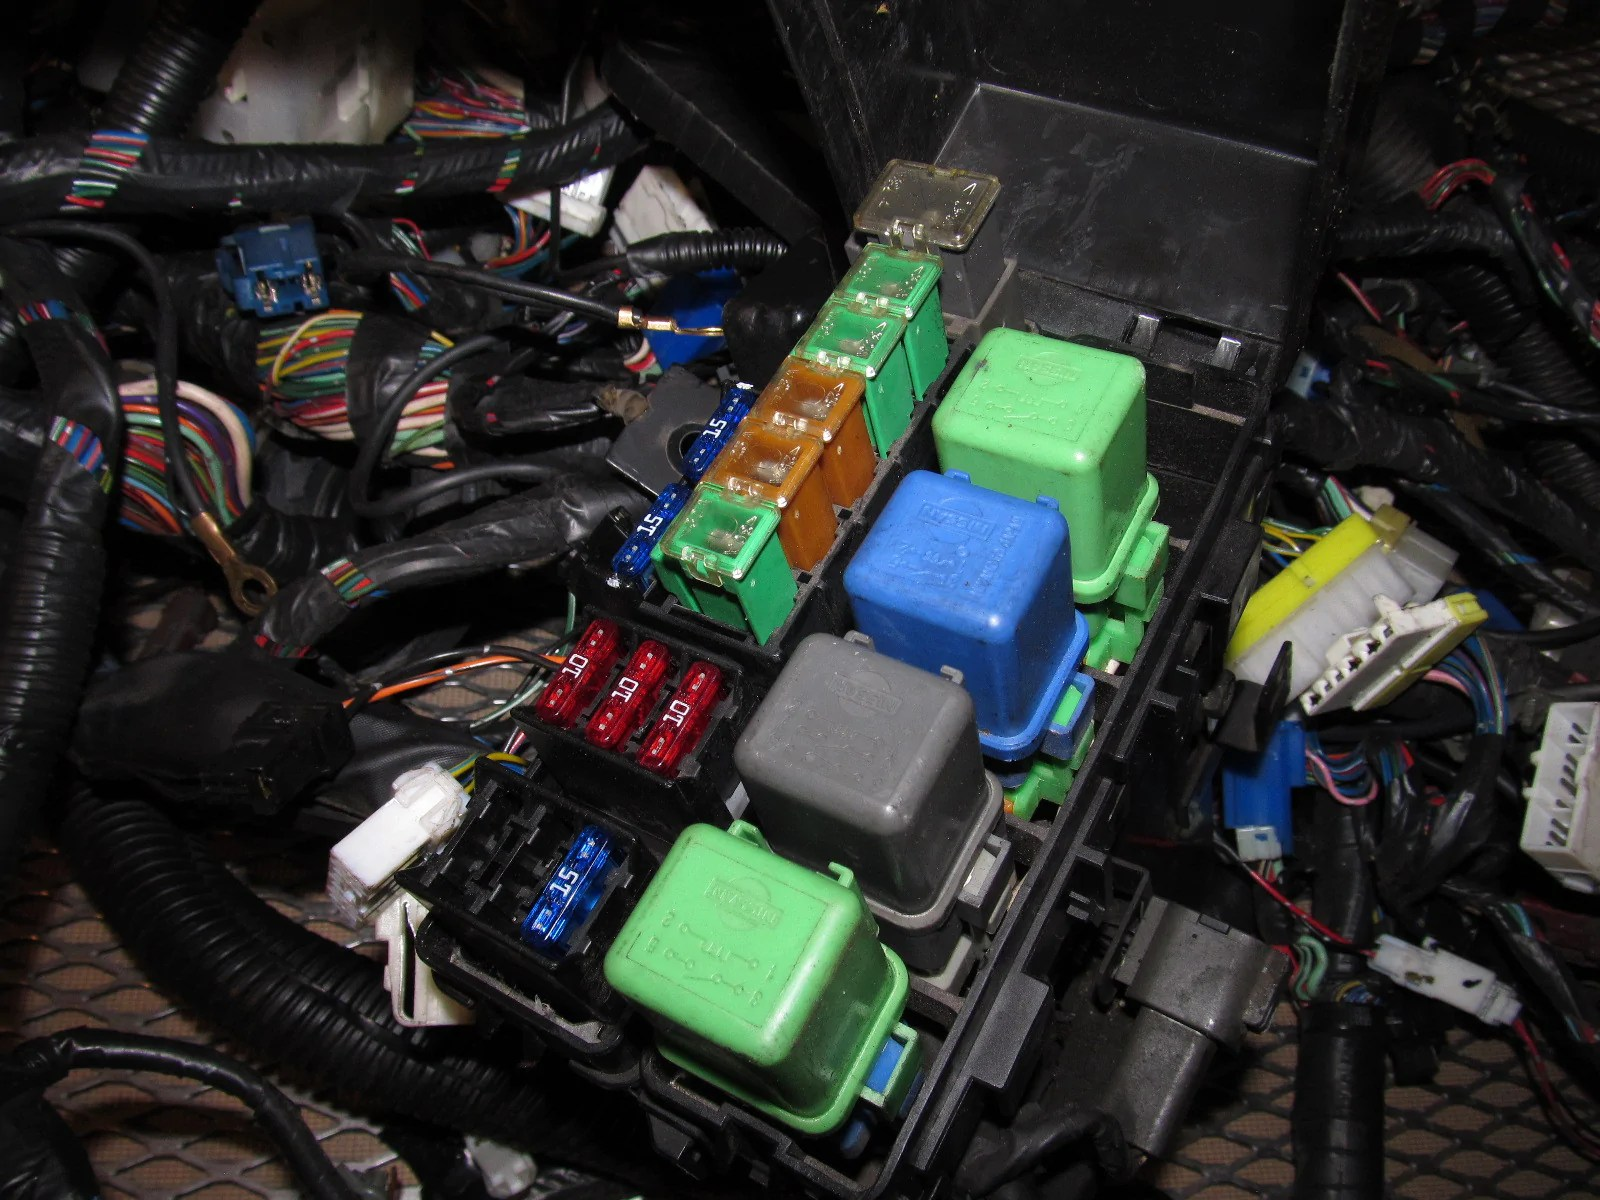 hight resolution of 93 nissan 240sx fuse box diagram wiring diagram third level93 nissan 240sx fuse box diagram simple